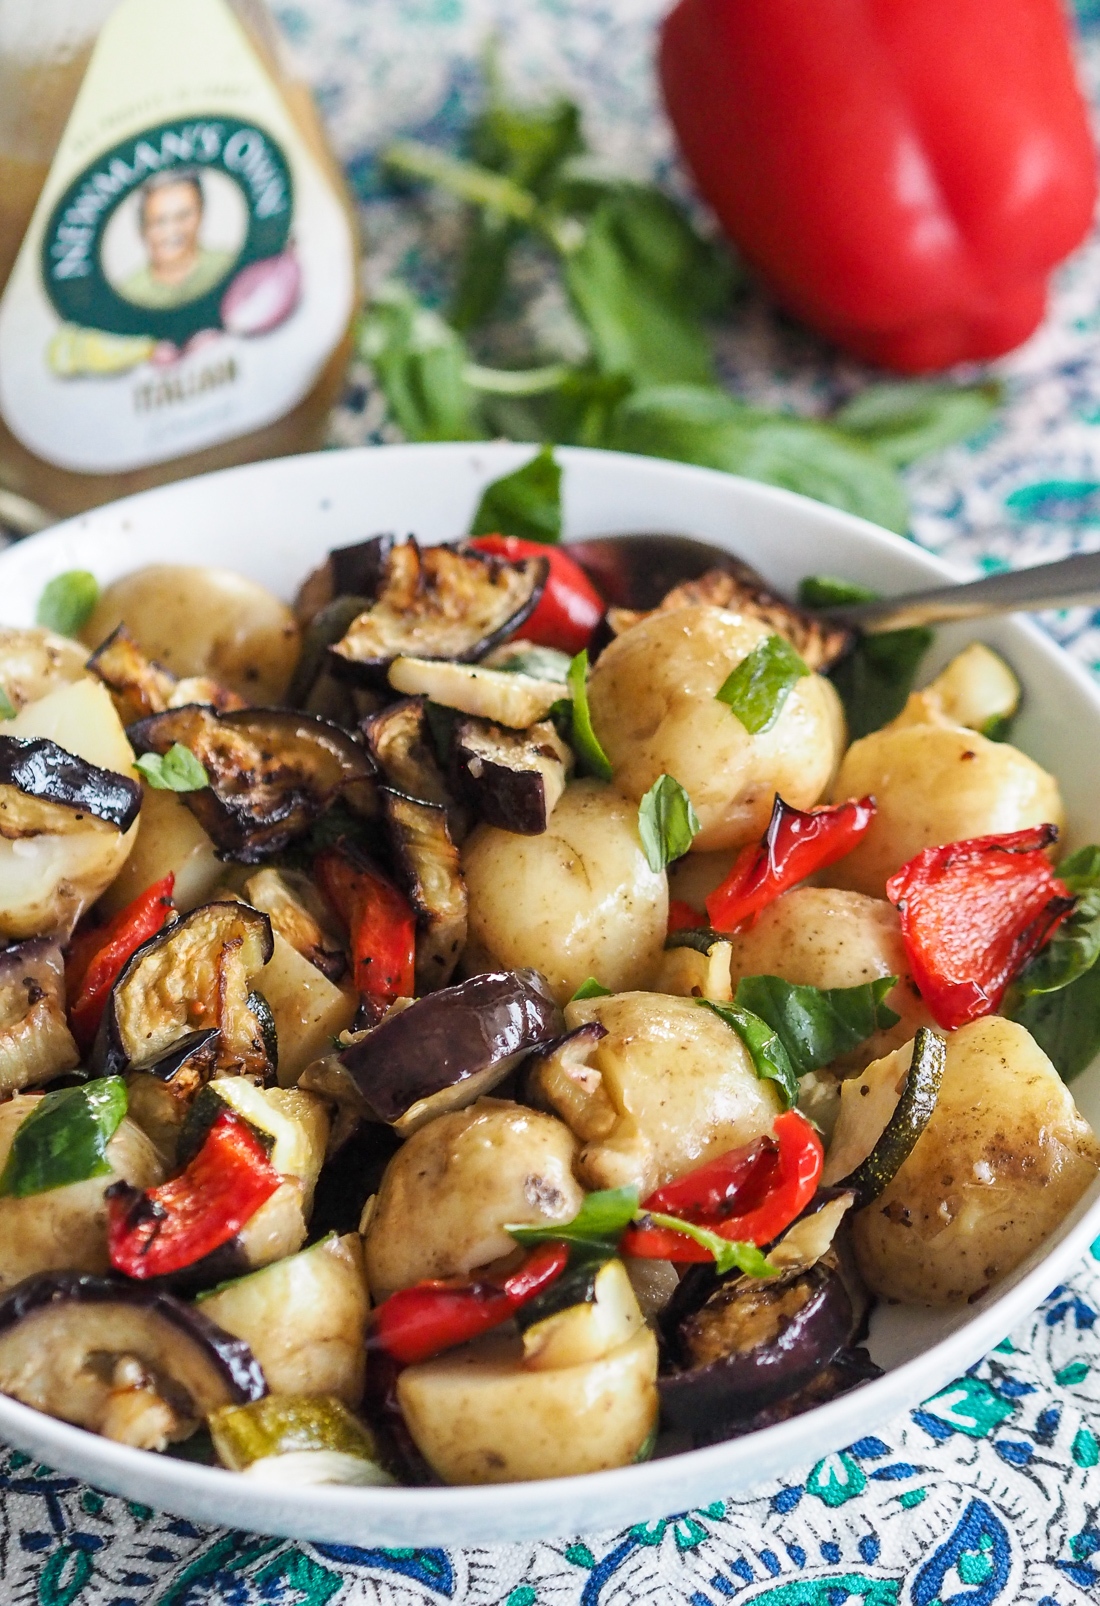 new potato and roast vegetable salad with italian dressing